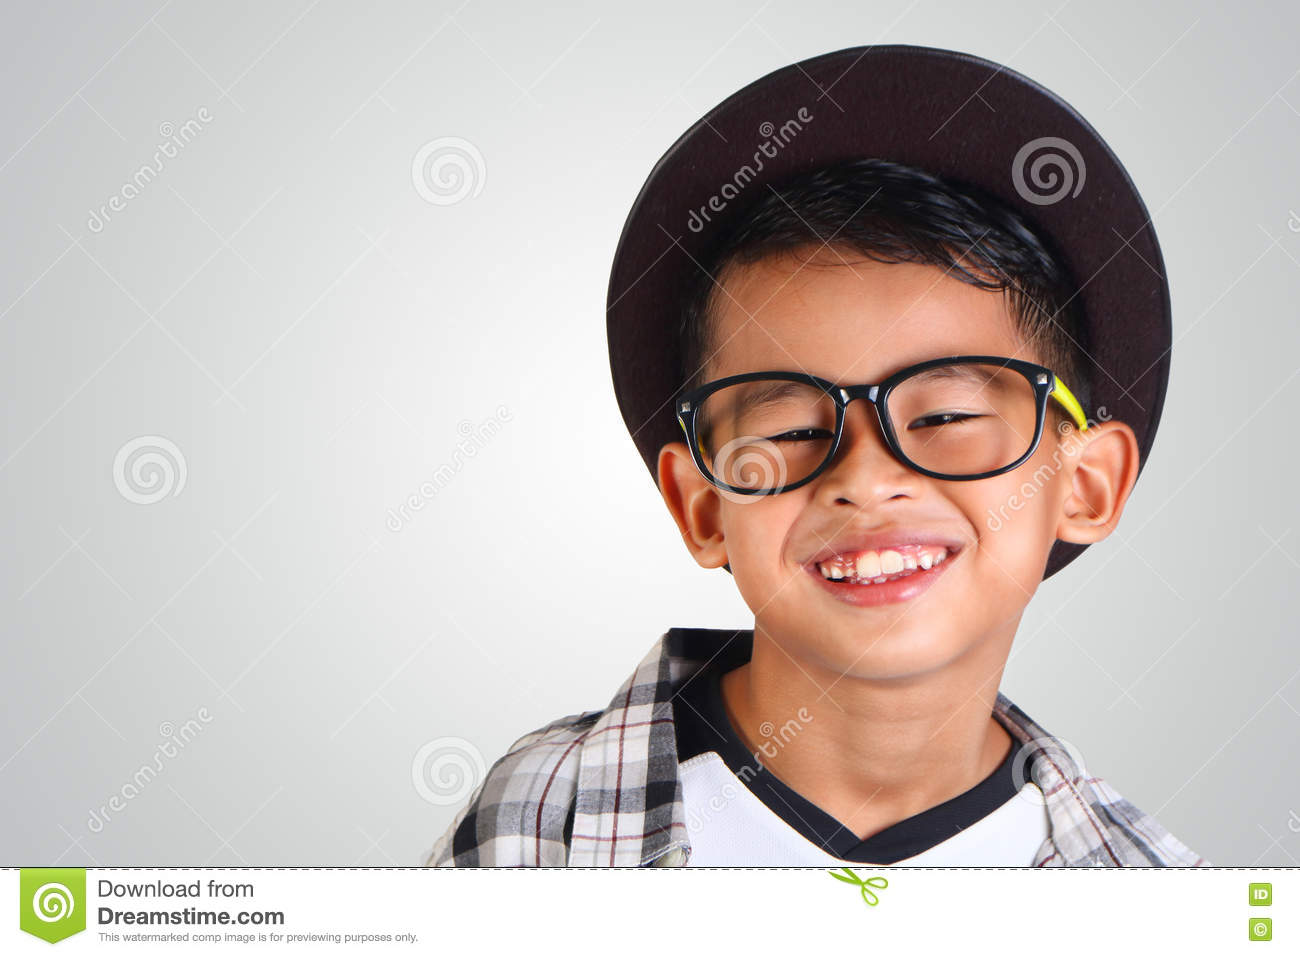 a01d159d1e5f Portrait of cute happy young Asian boy wearing hat and glasses smiling